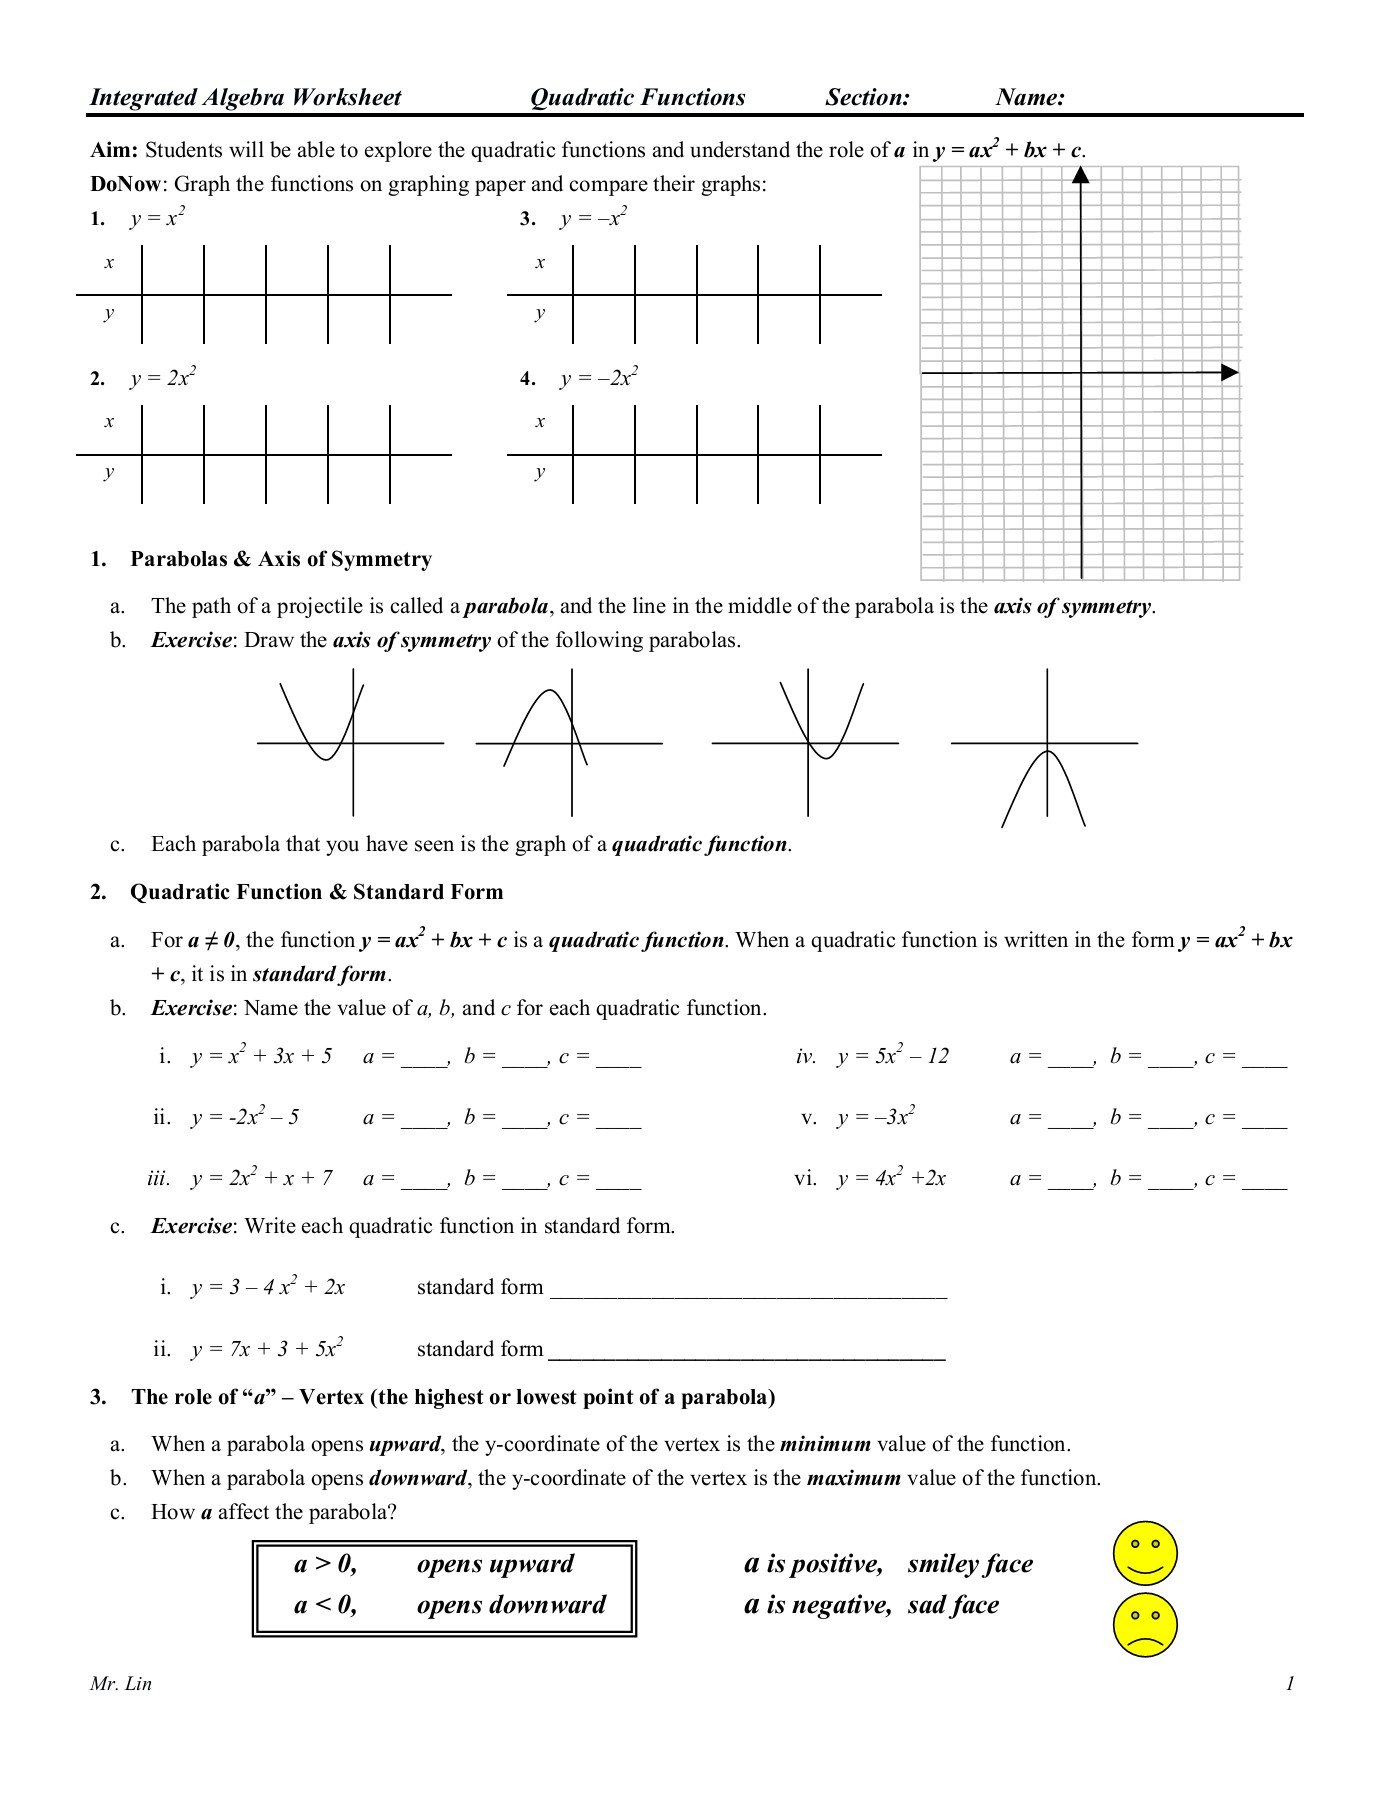 Algebra 1 Quadratic Functions Worksheet Answers